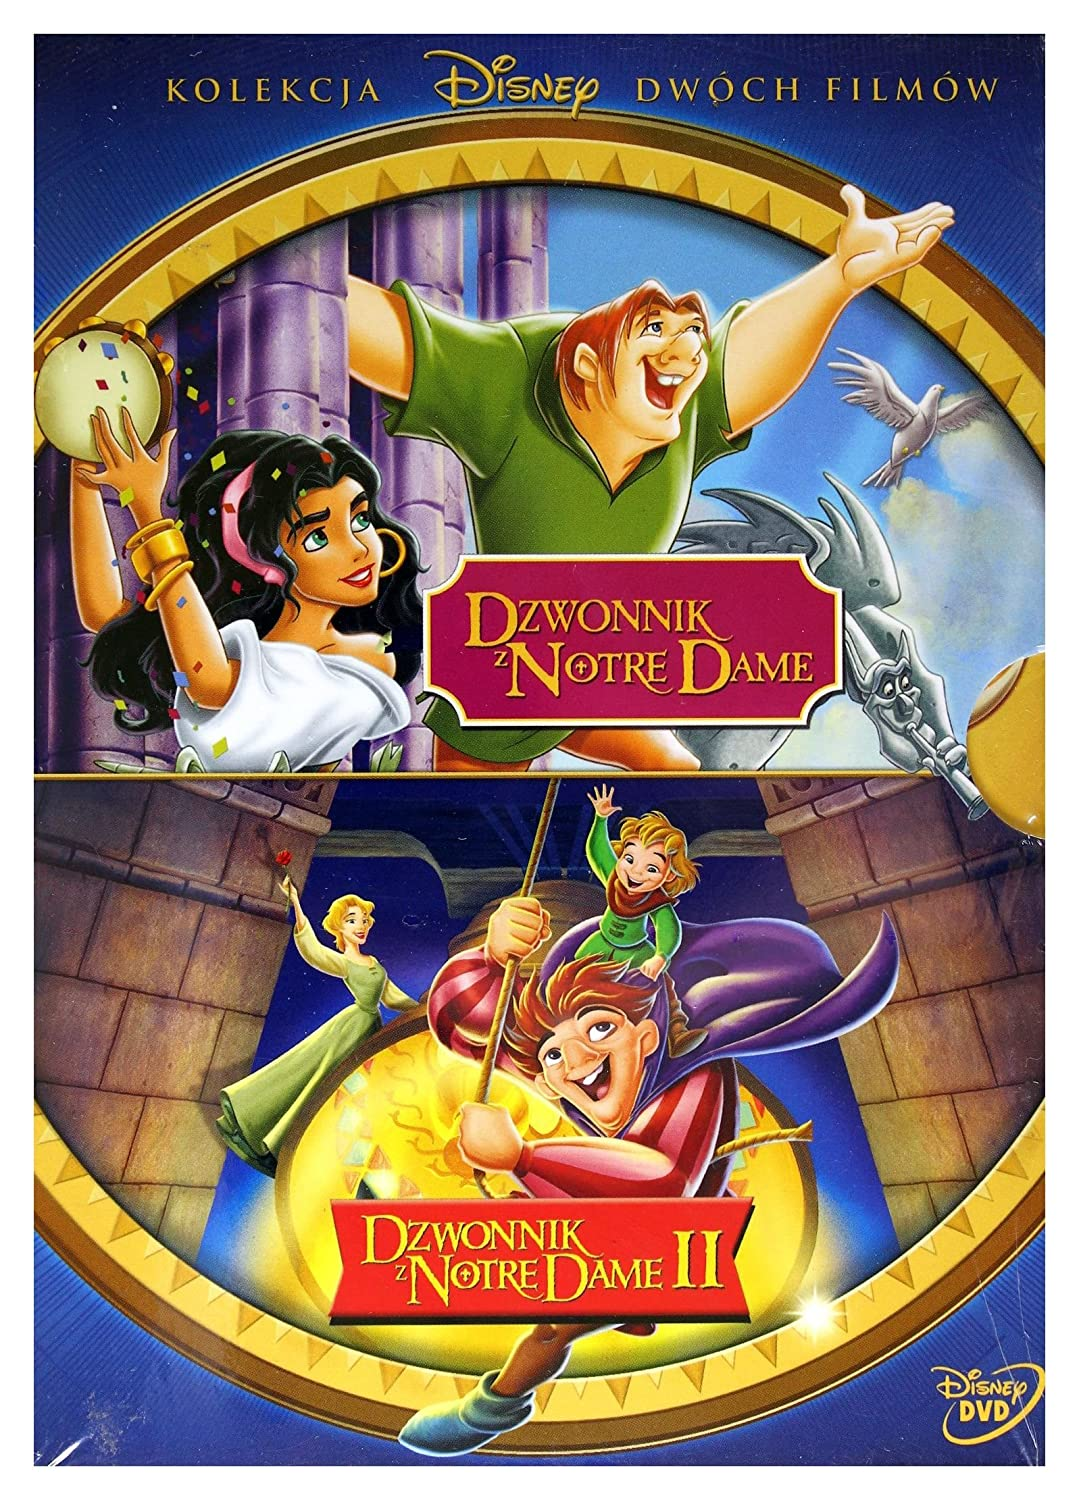 Amazon Com Dzwonnik Z Notre Dame Dzwonnik Z Notre Dame Ii Disney Box 2dvd English Audio English Subtitles Movies Tv